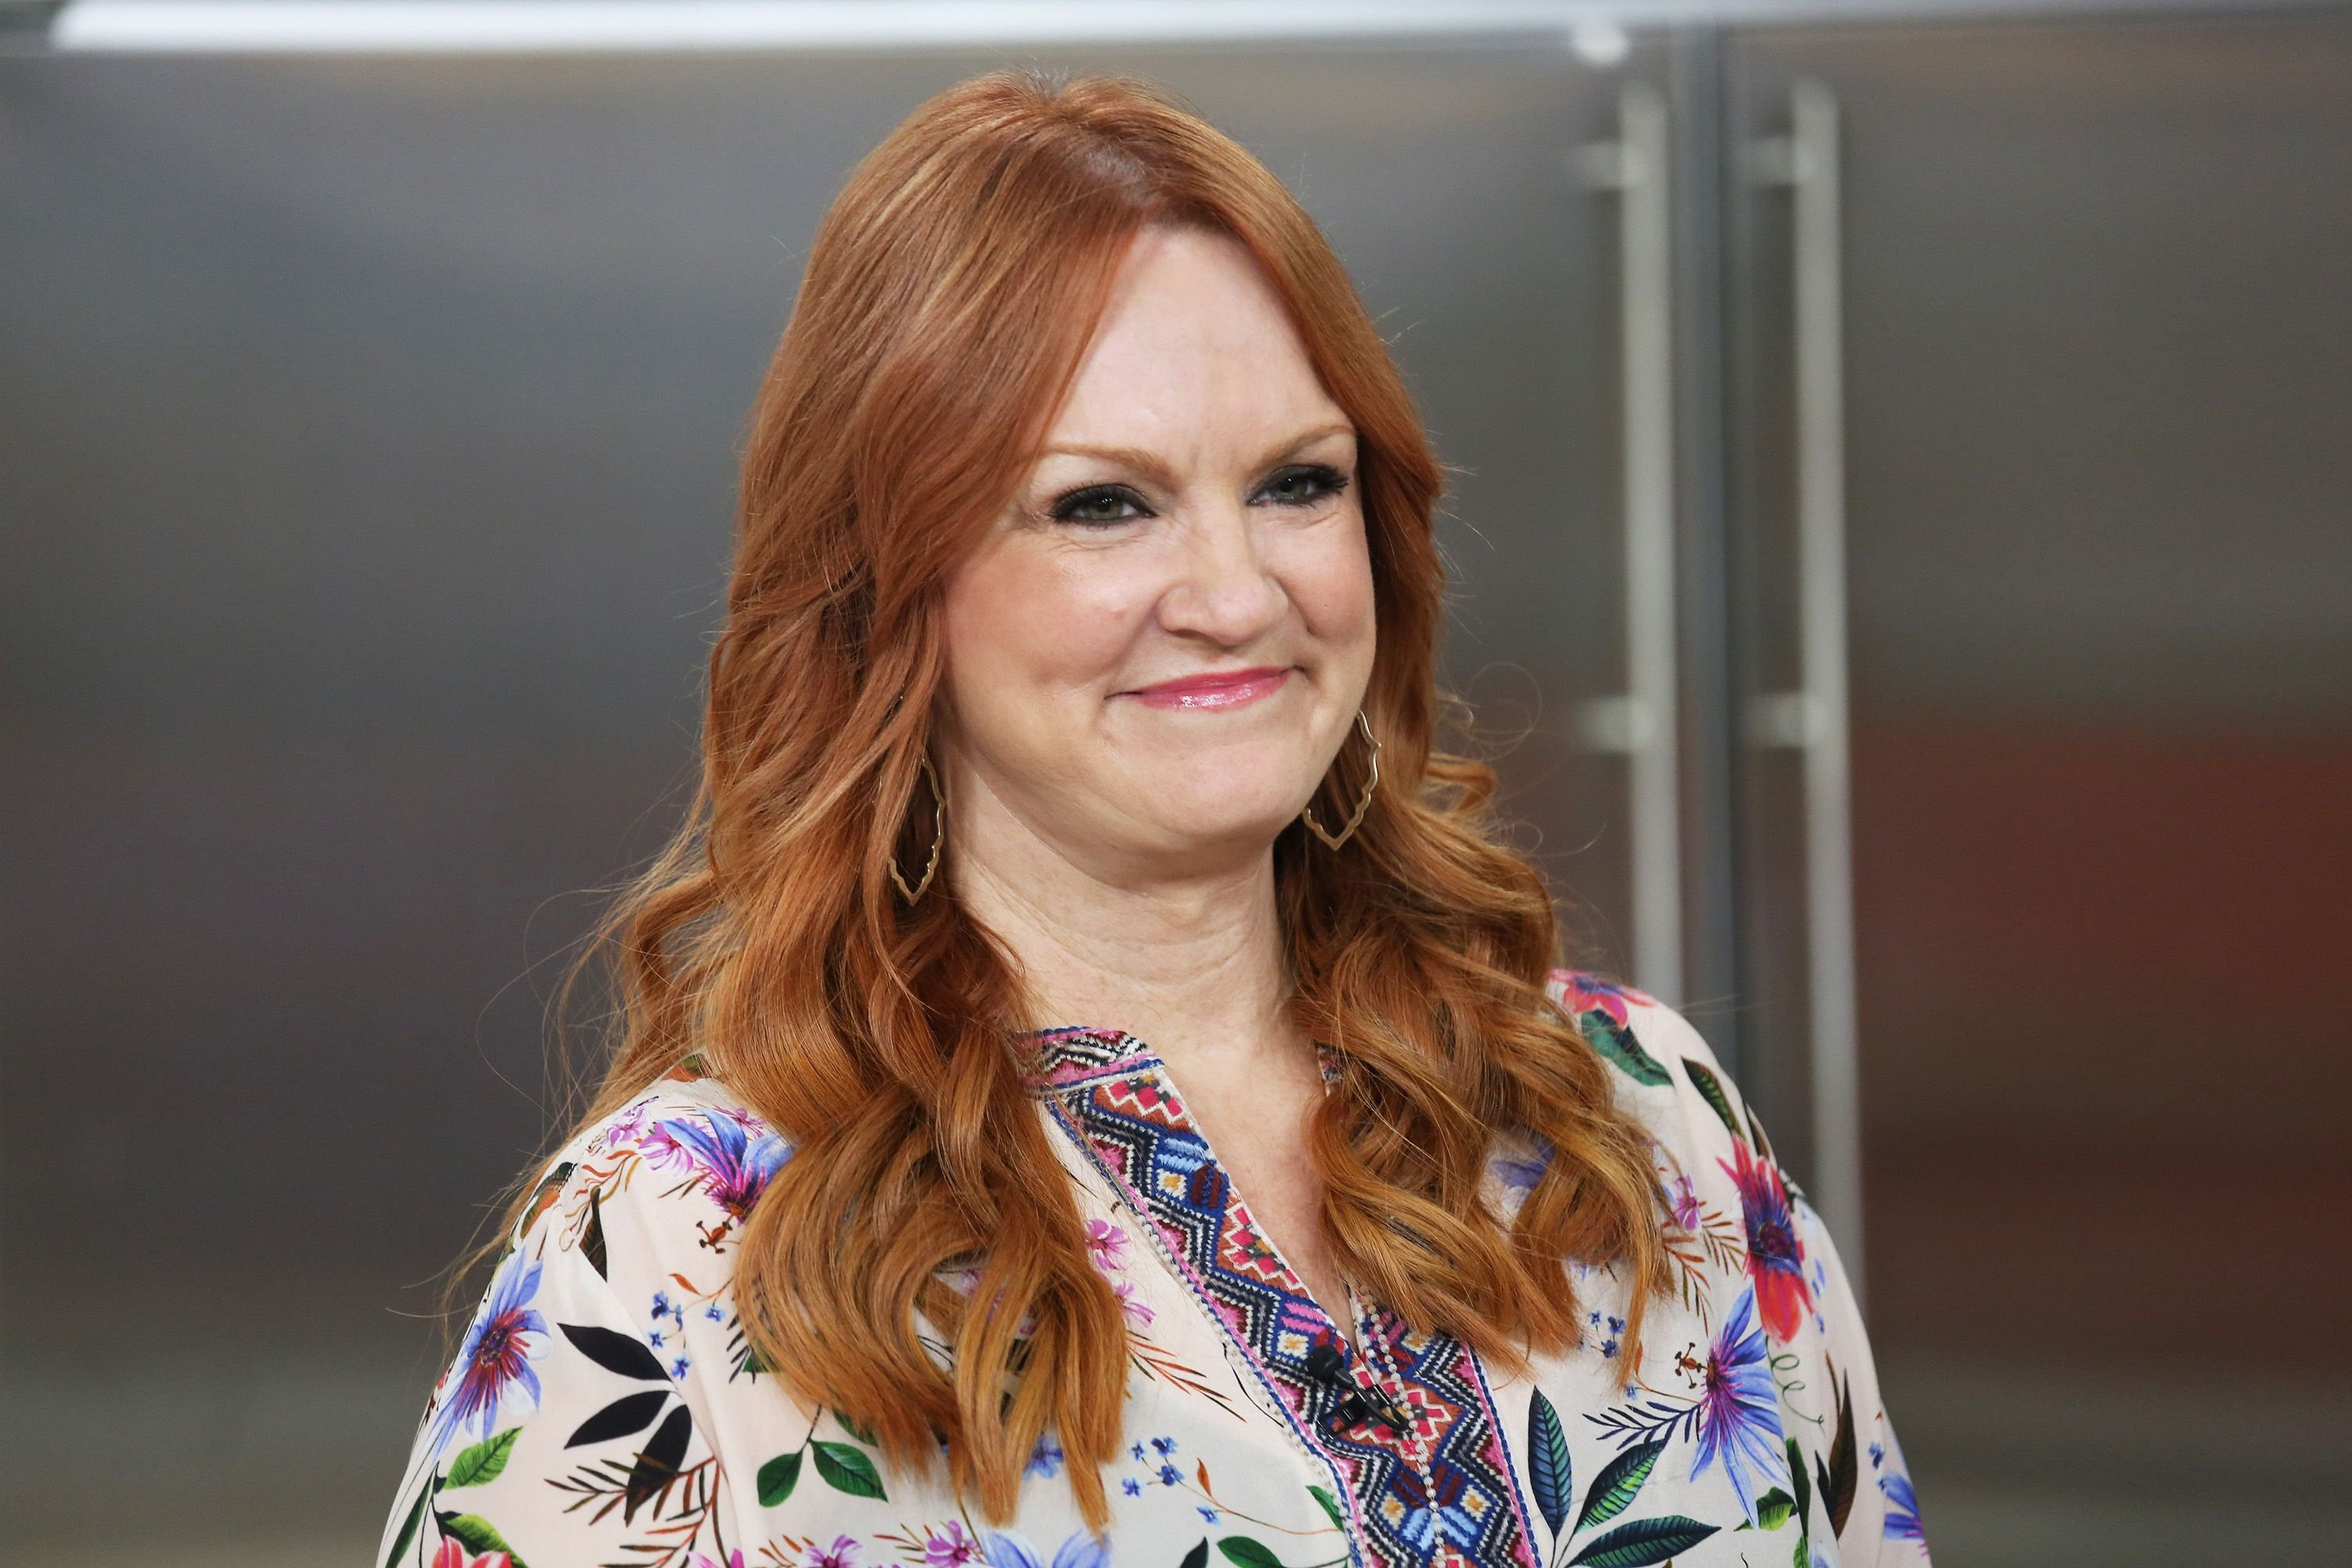 Ree Drummond at NBC Studio on Tuesday October 22, 2019   Photo: Getty Images